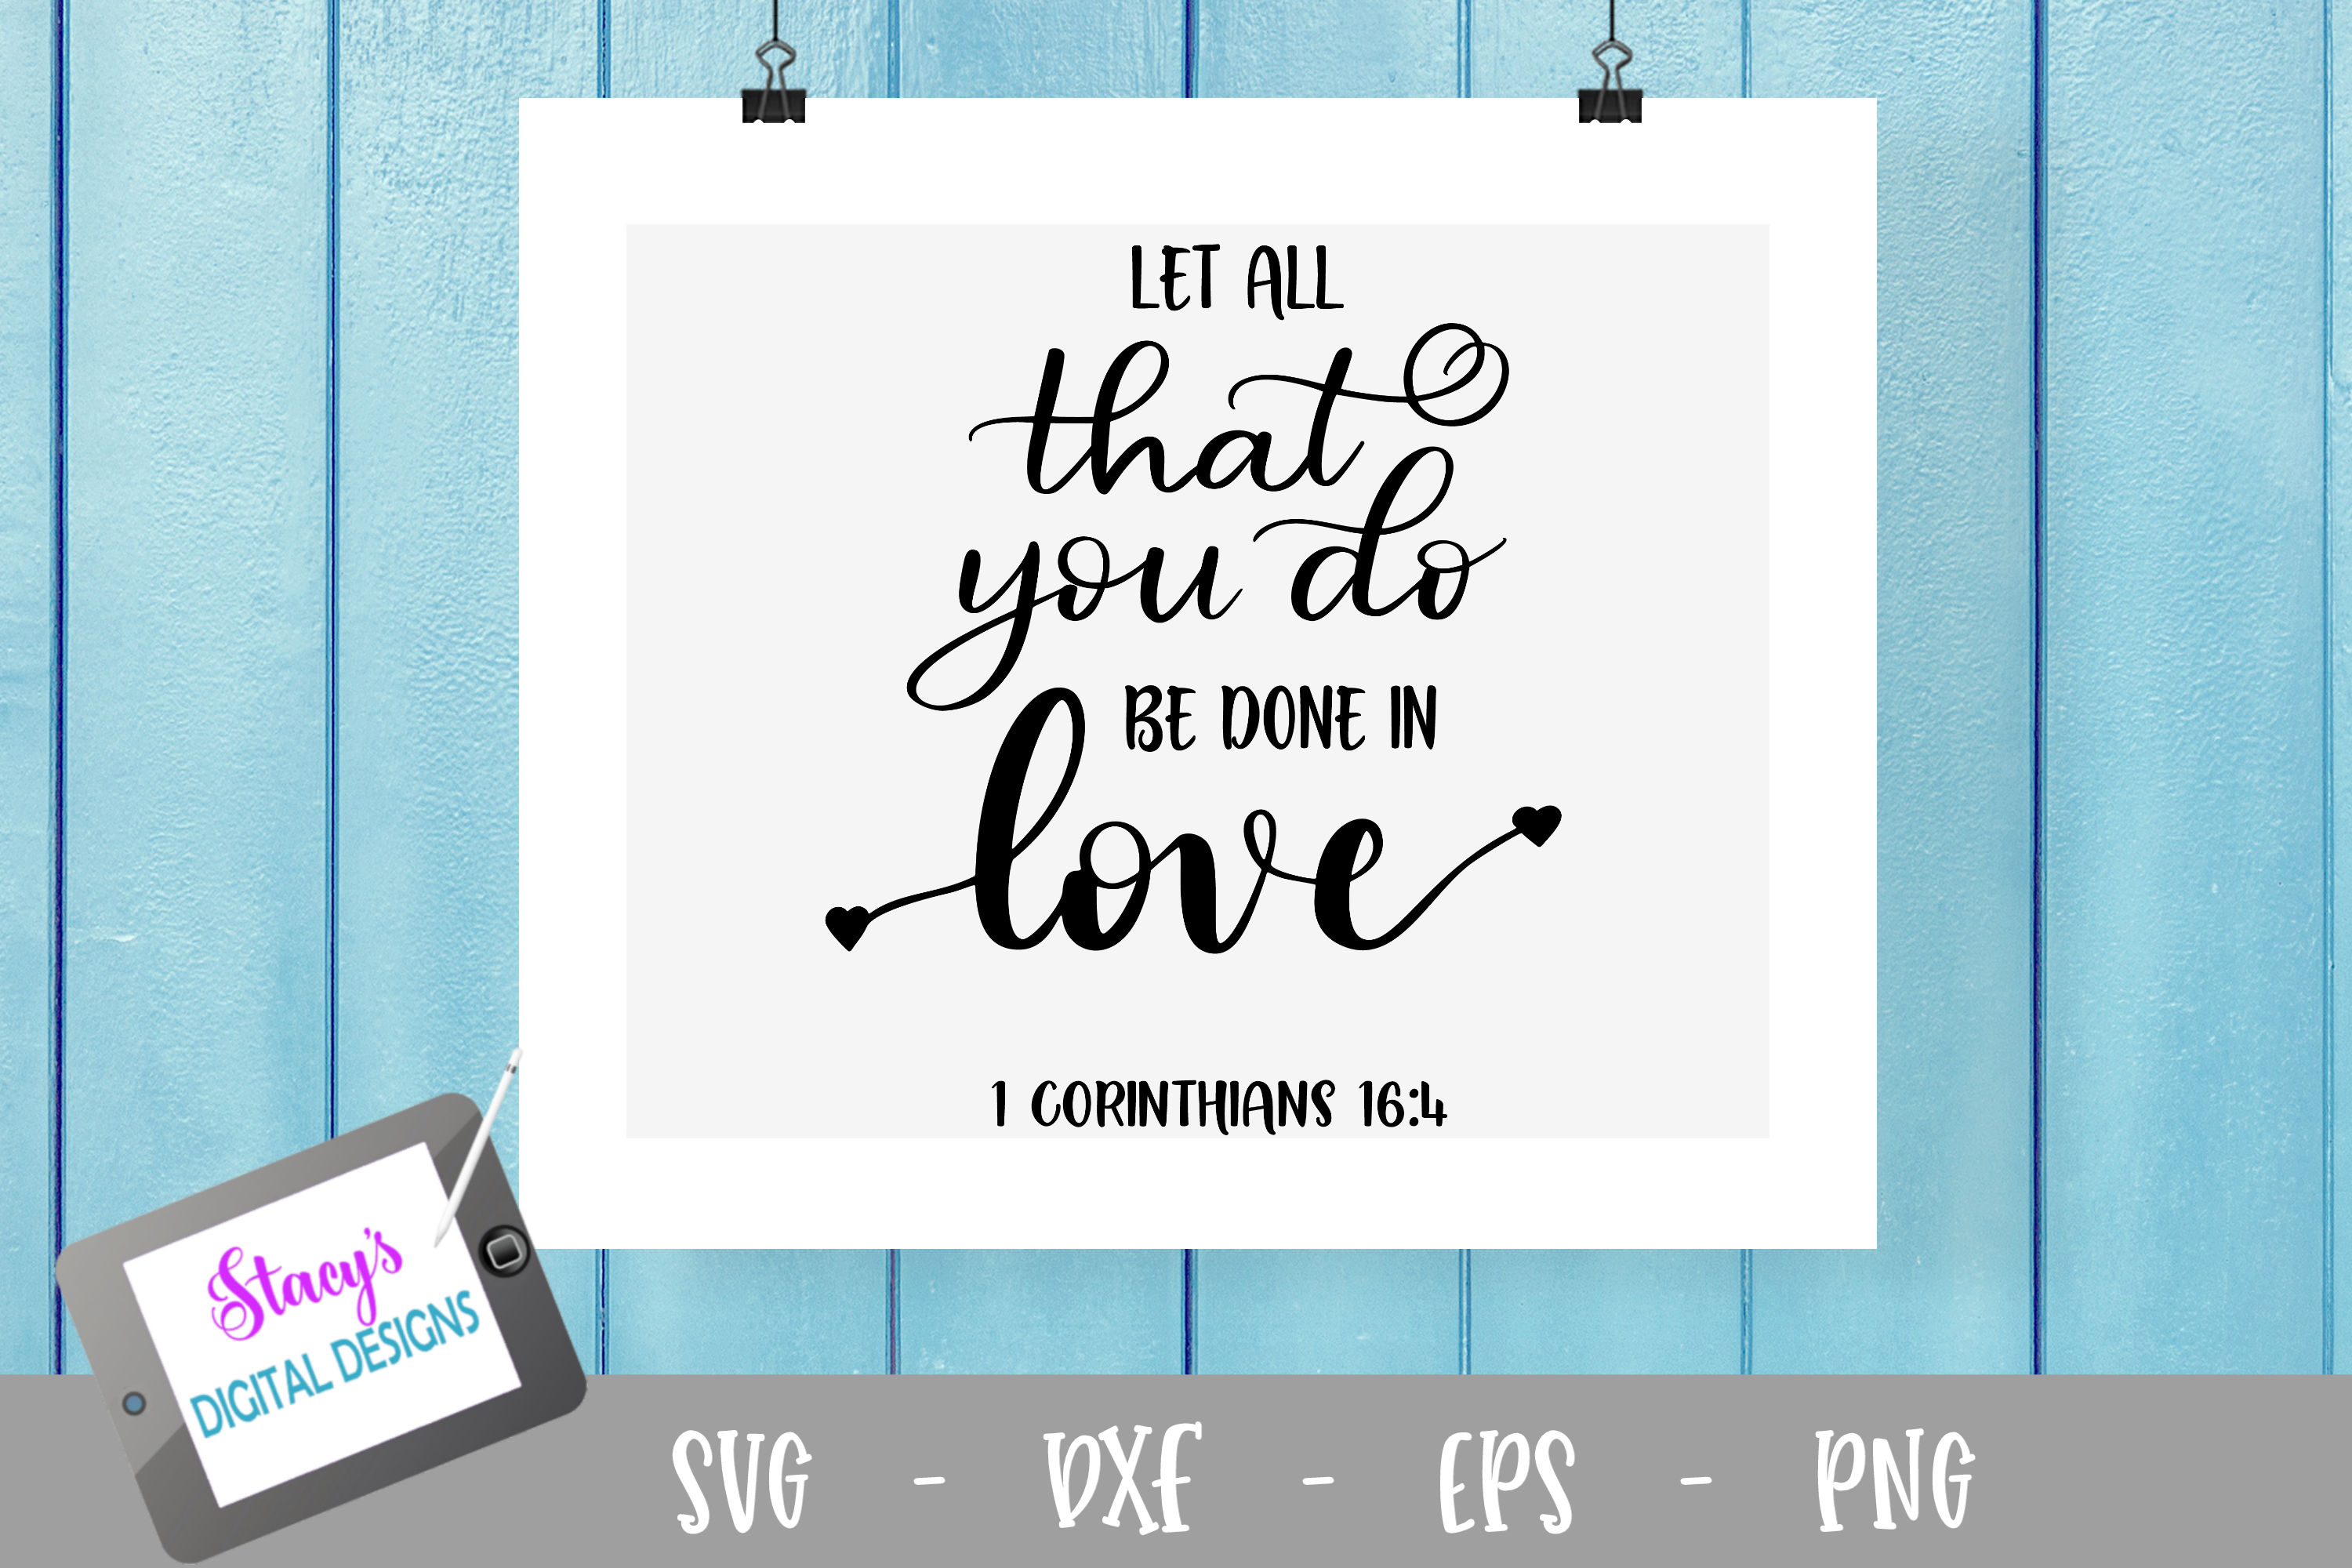 Let all that you do be done in love SVG example image 2